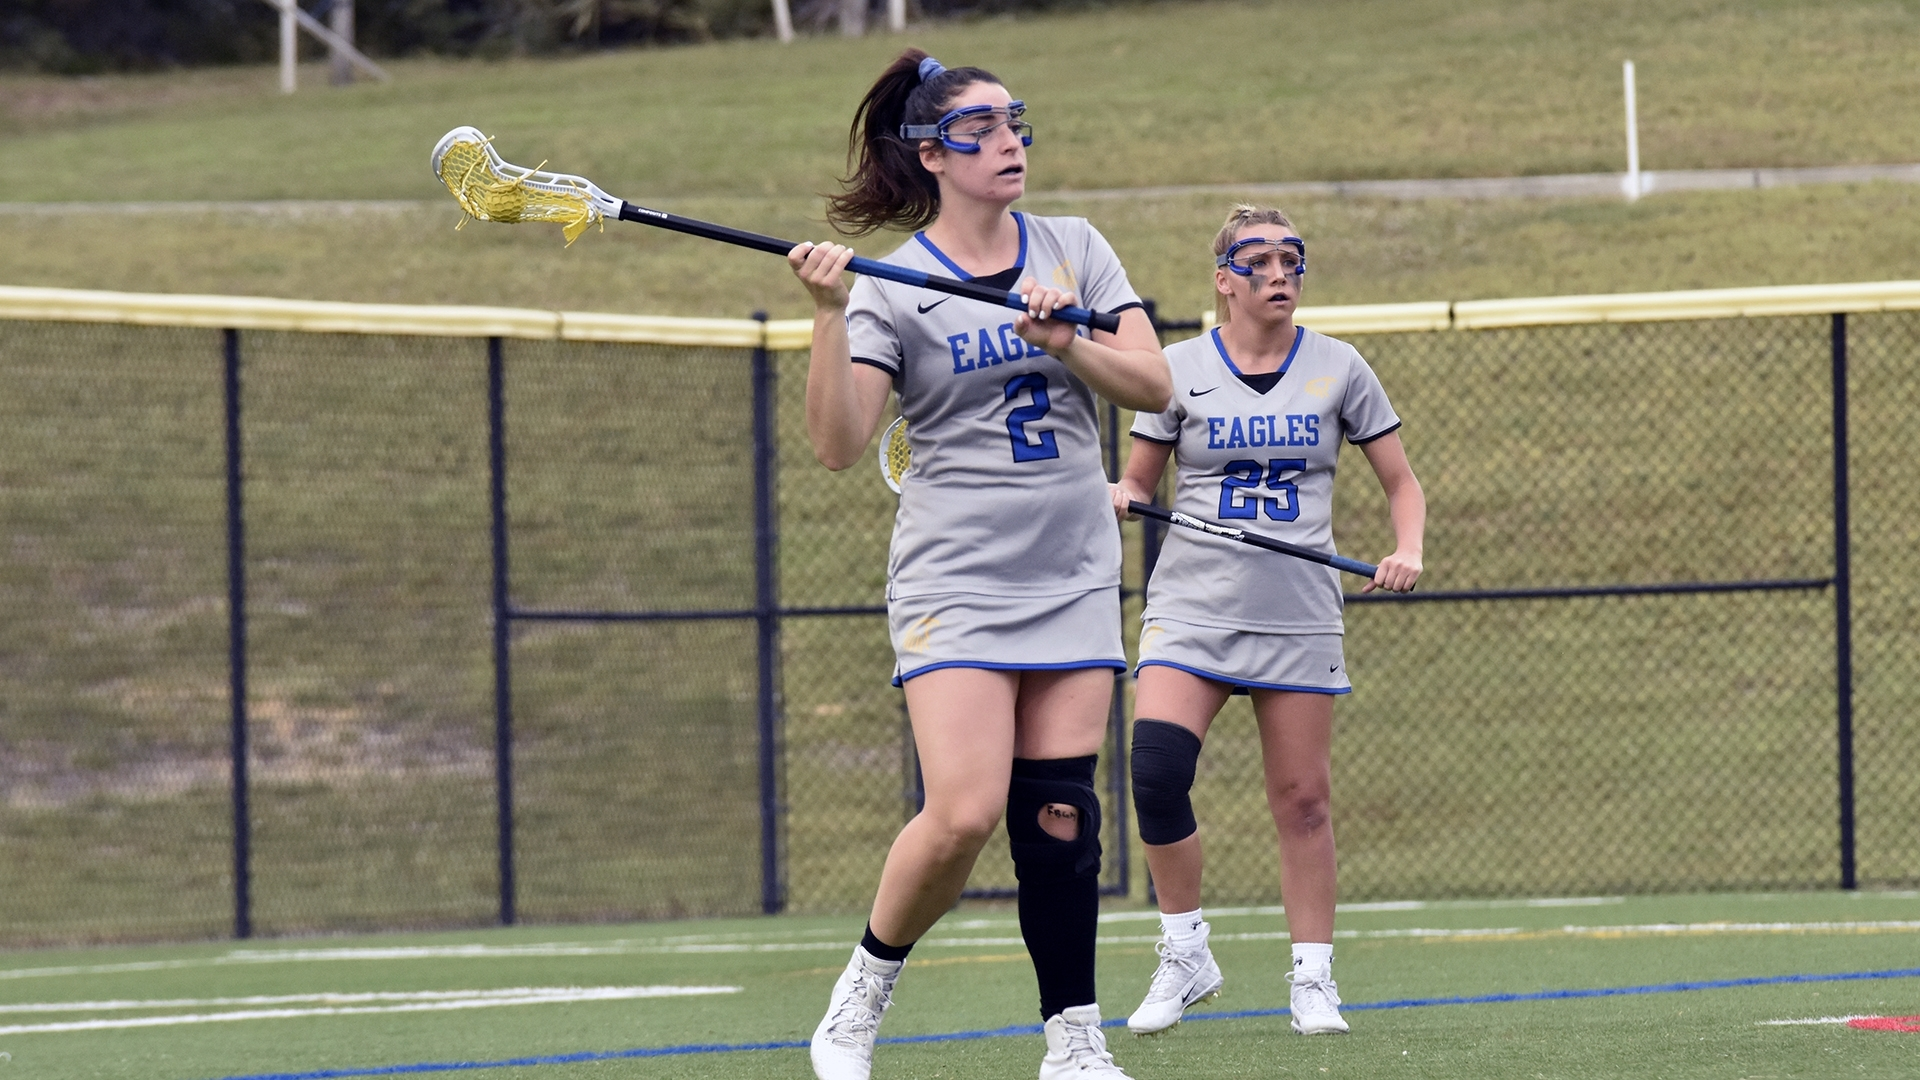 Gillian Greenberg - 2021 - Women'S Lacrosse - Embry-Riddle